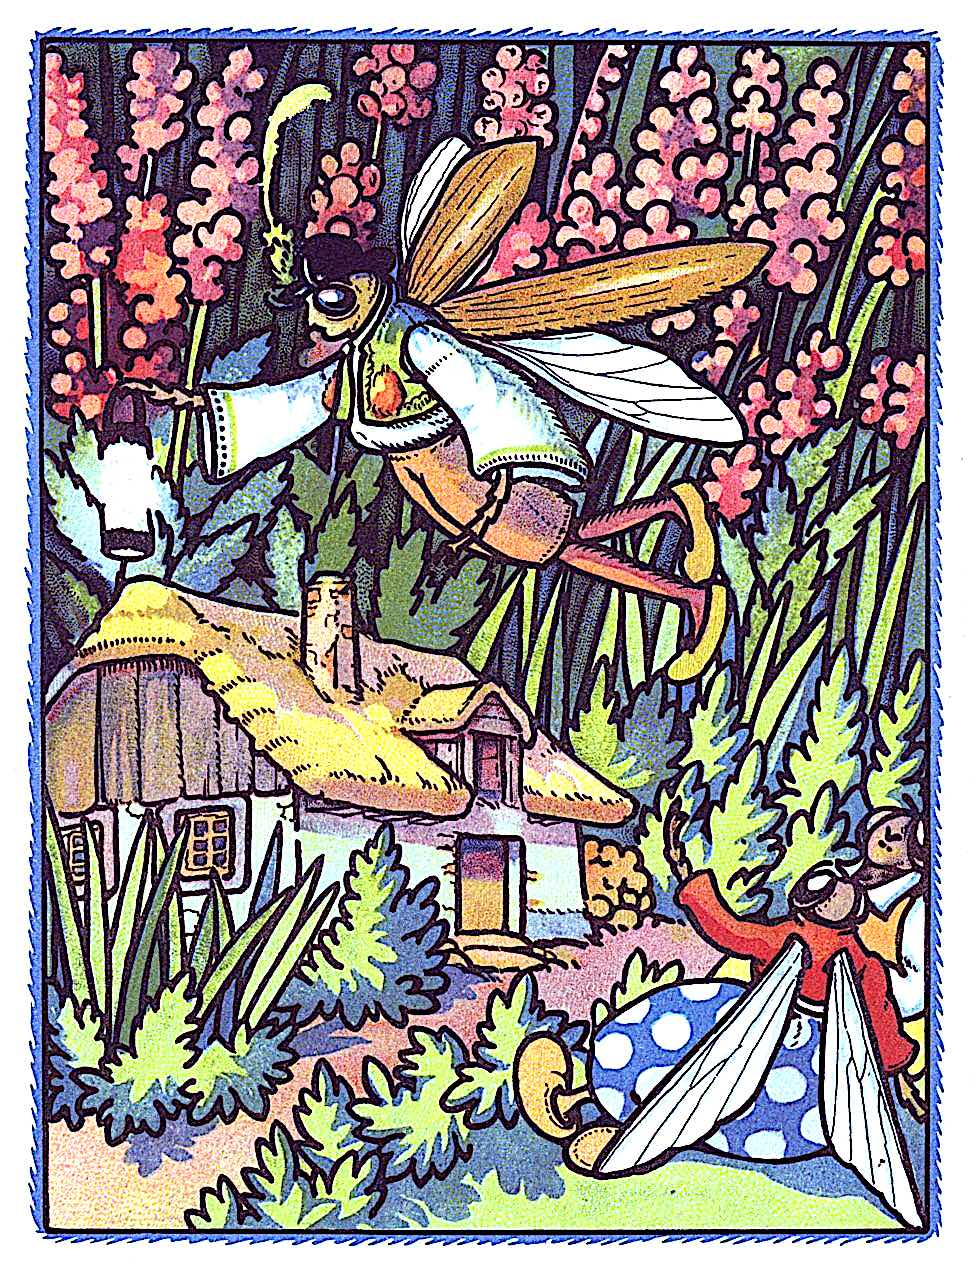 a Rudolf Mates children's book illustration of bugs or insects and their house in a wild field